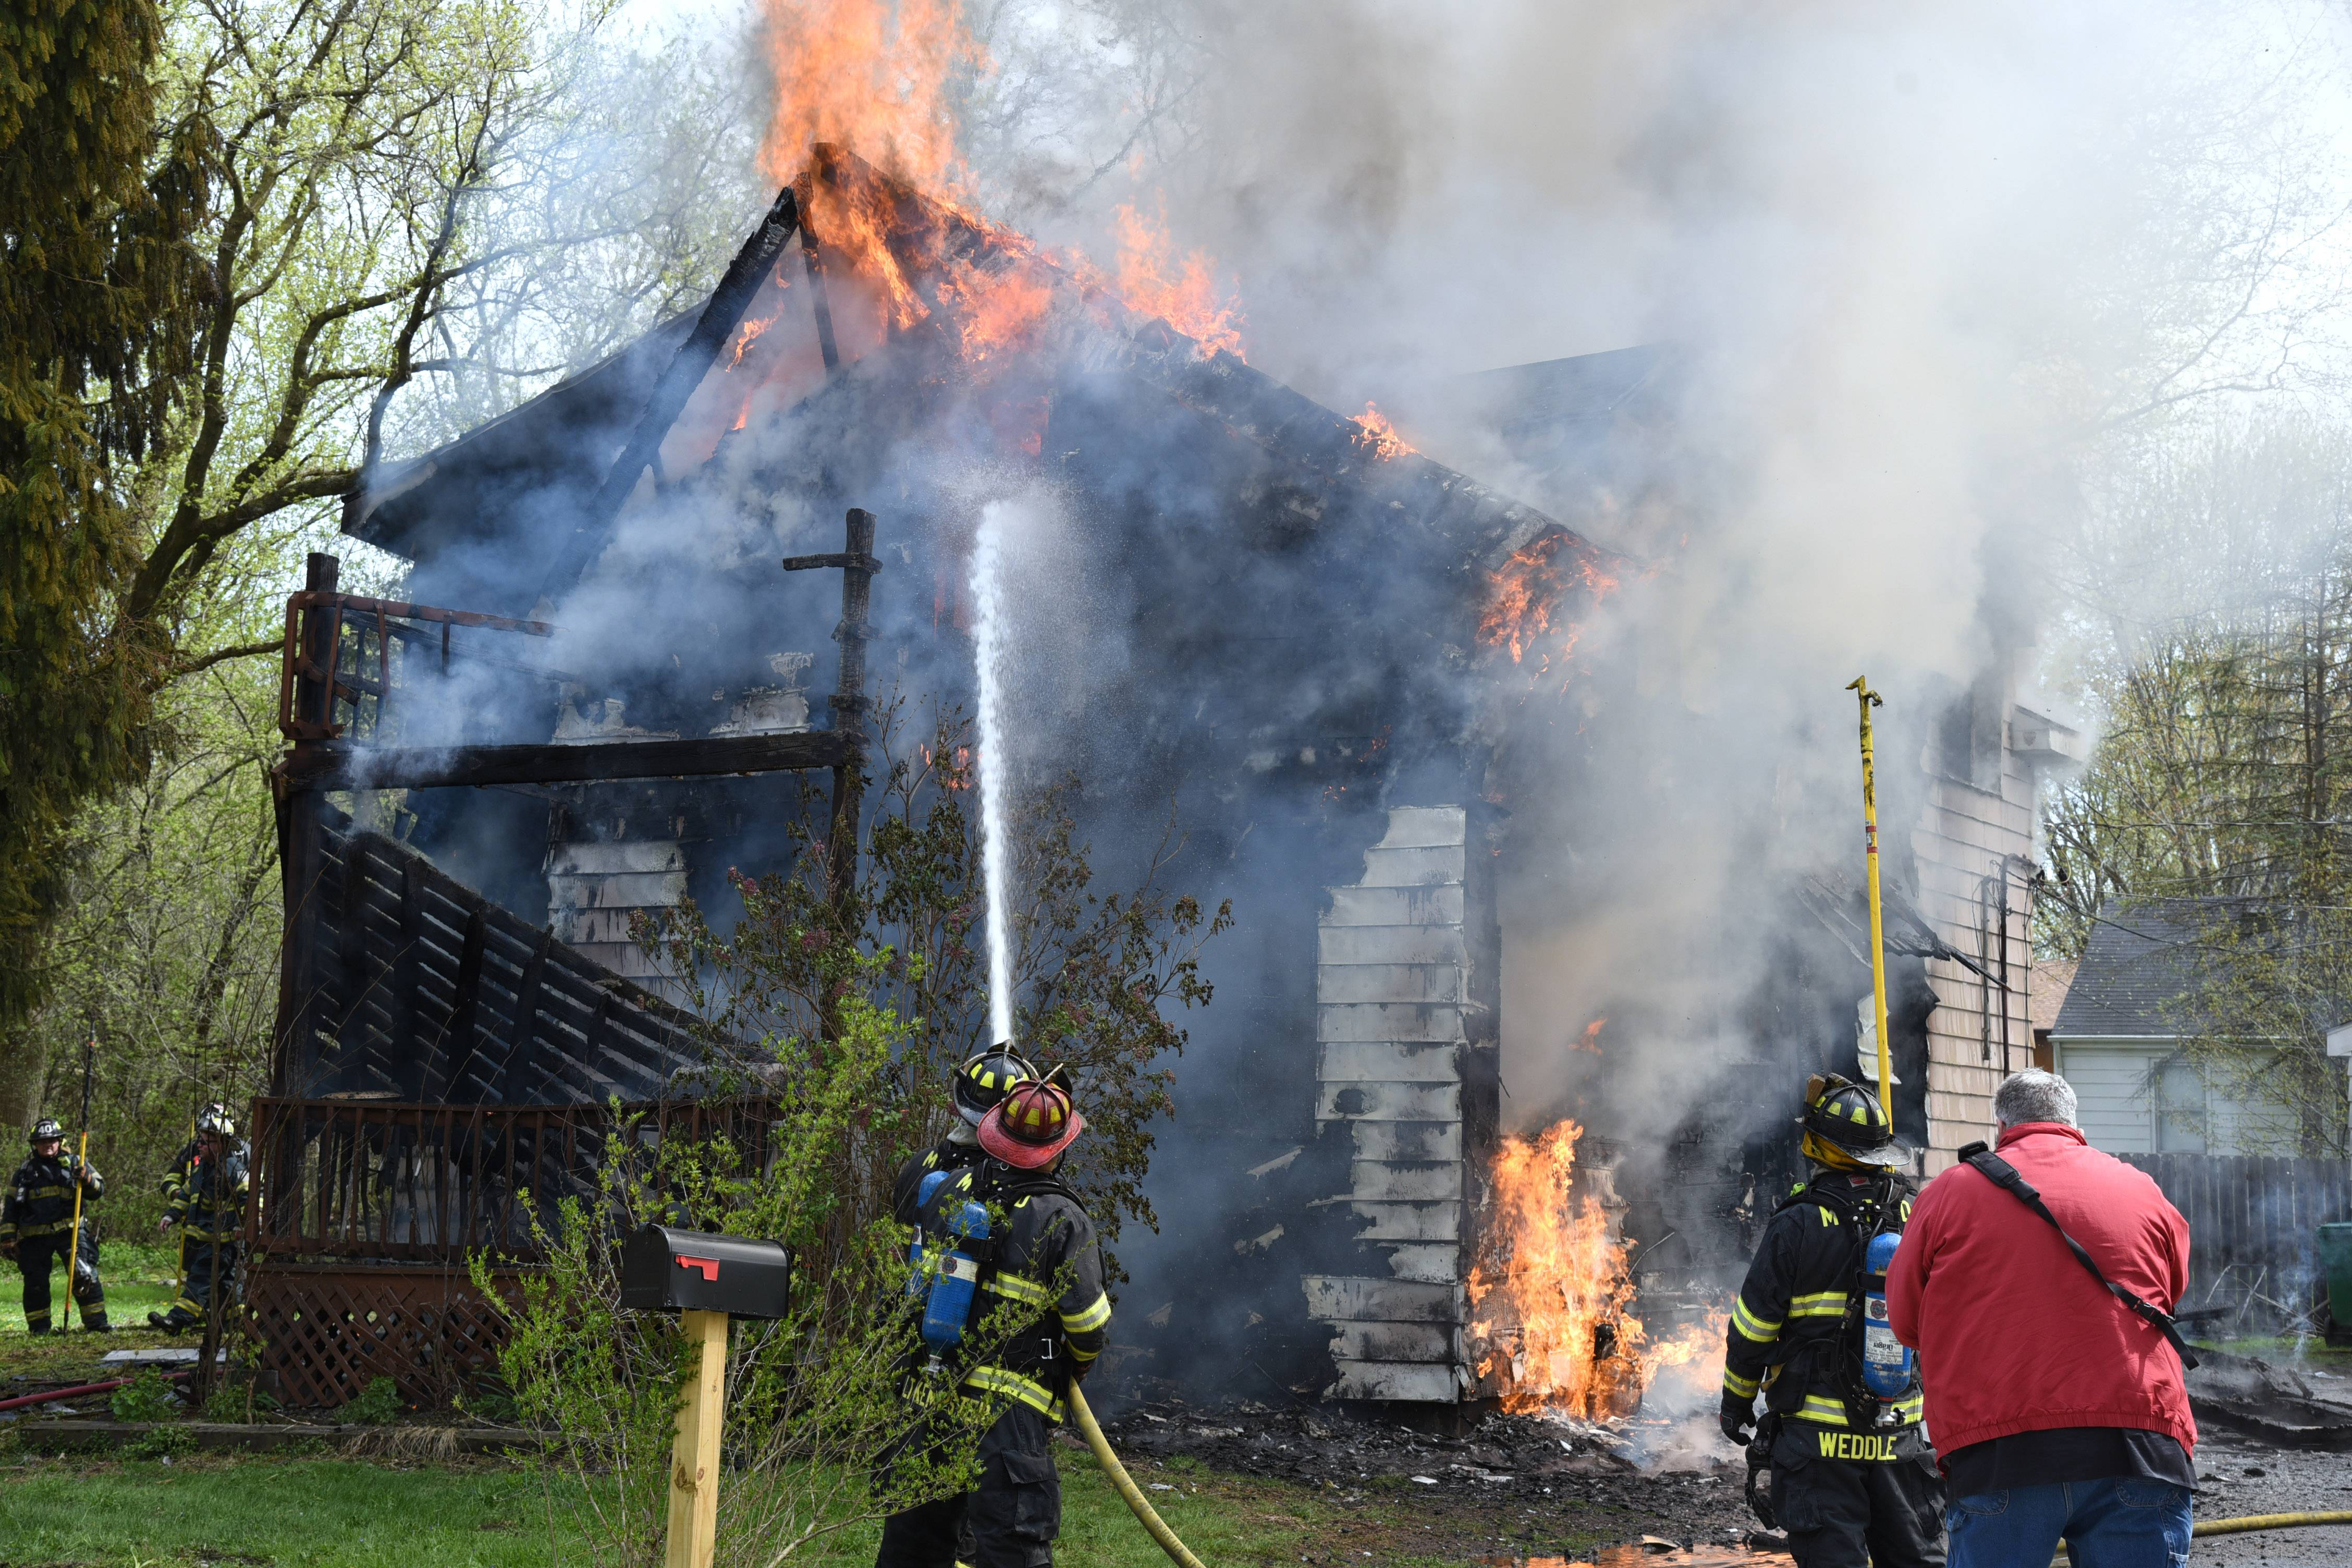 Fire engulfs a Lakemoor home on the 300 block of N. Rosedale Drive Friday morning in Lakemoor. Crews from eight fire departments responded to the blaze.